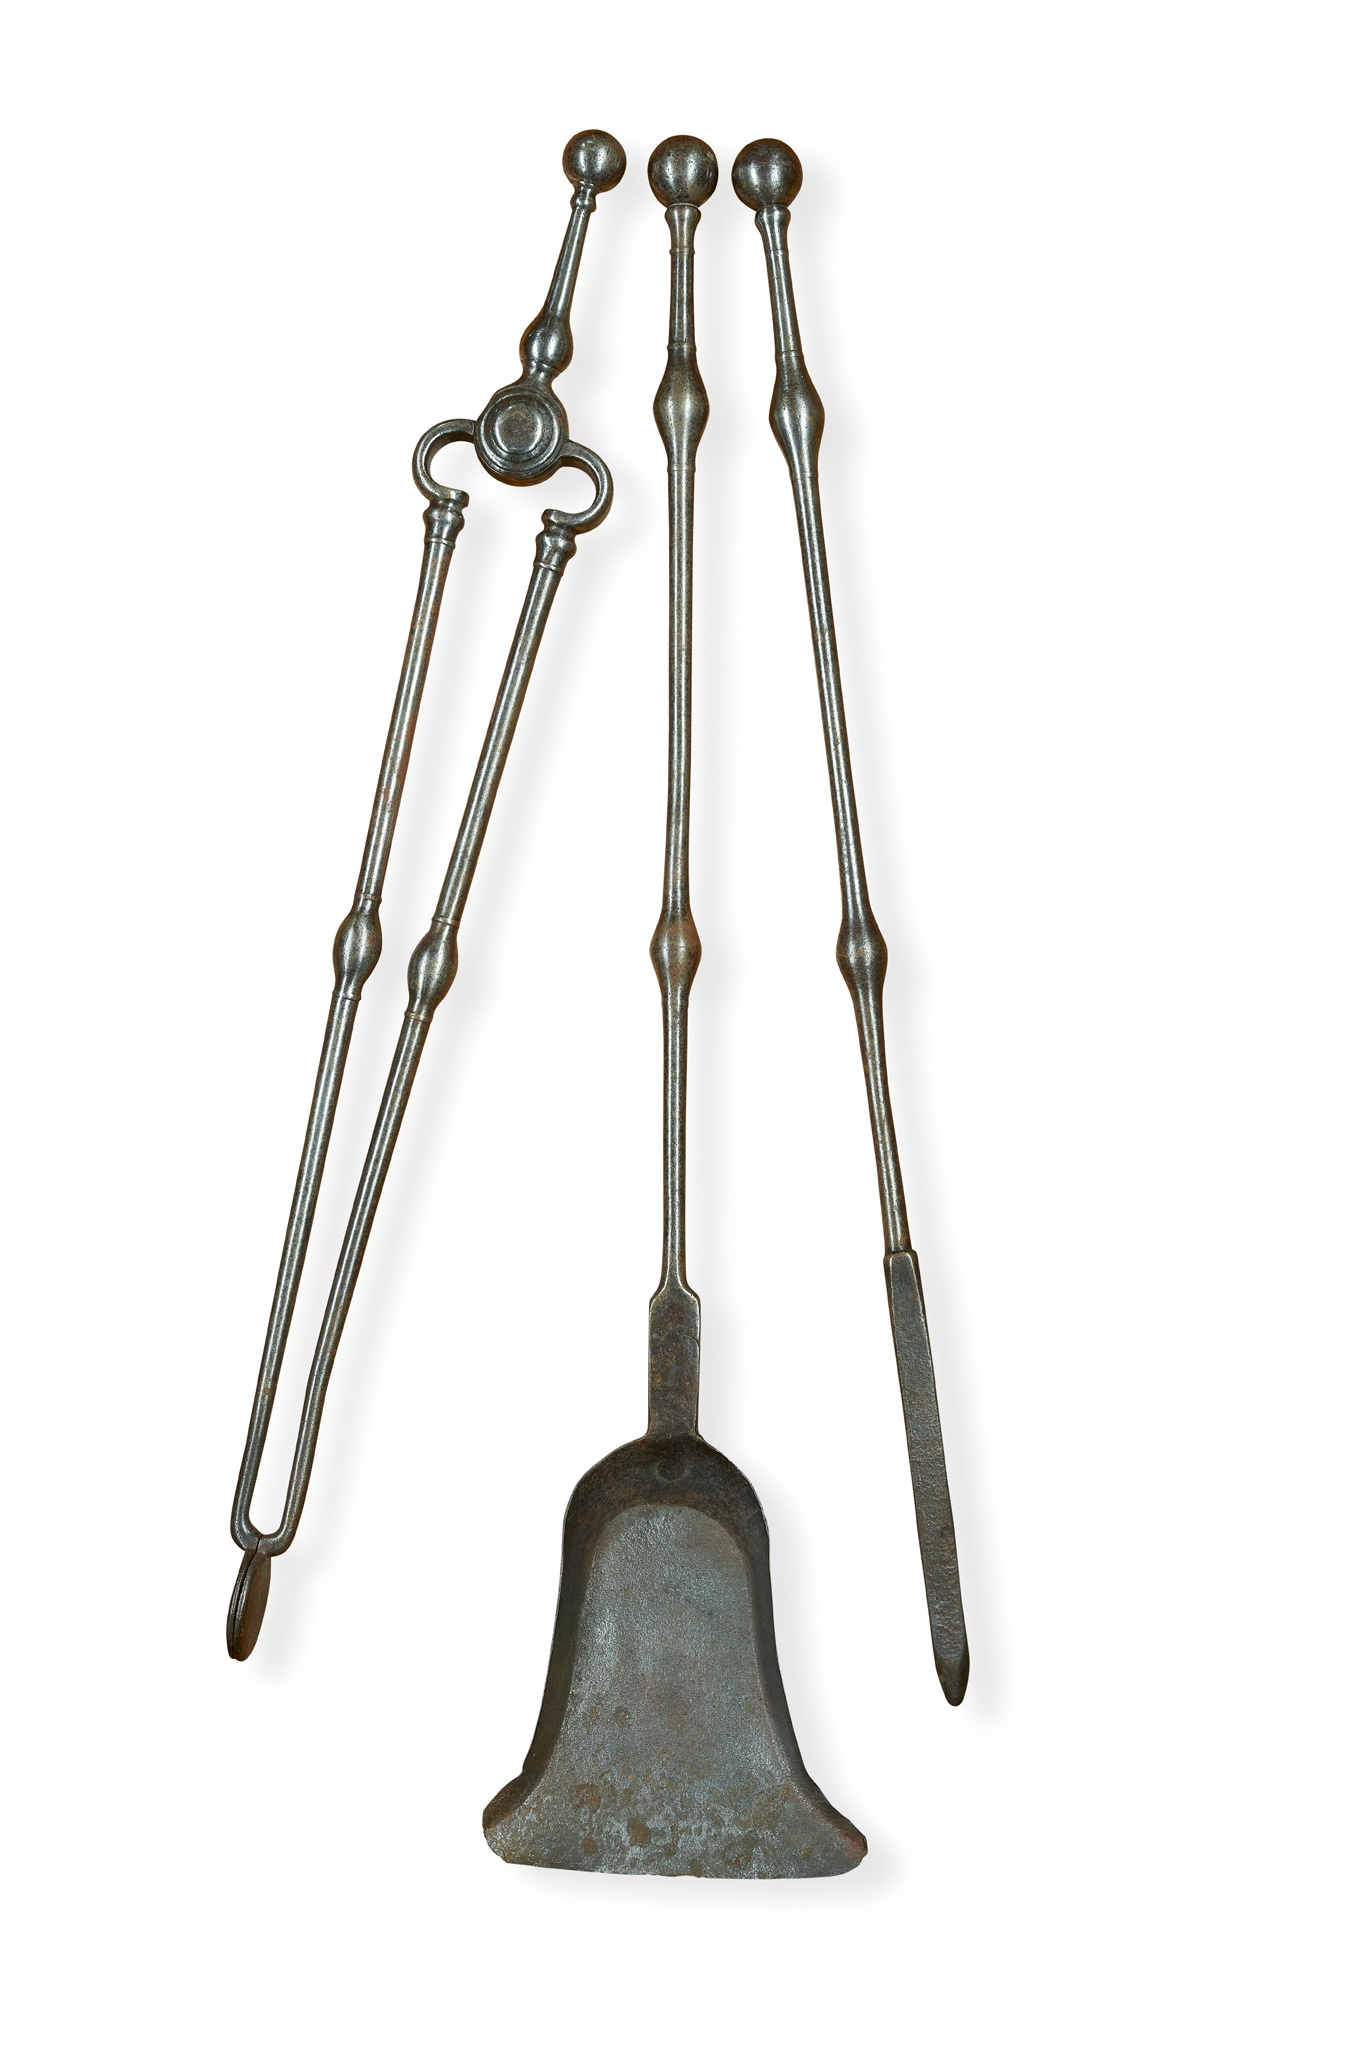 SET OF GEORGE III STEEL FIRE IRONS EARLY 19TH CENTURY